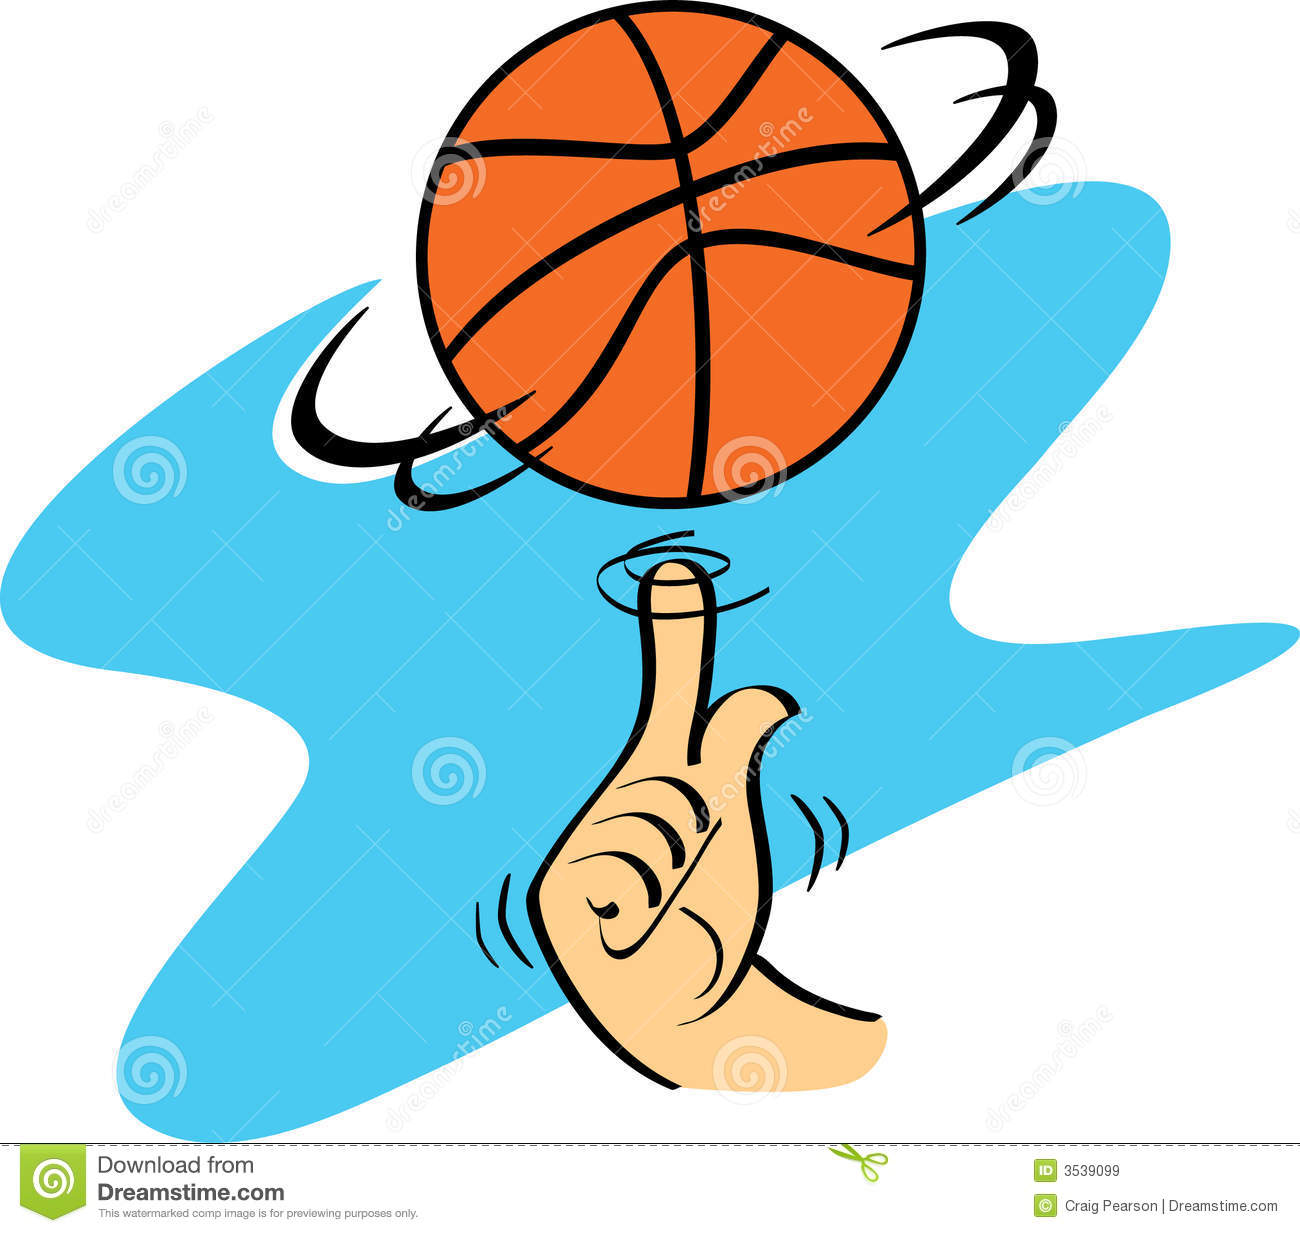 Spinning clipart graphic royalty free Basketball Spinning | Clipart Panda - Free Clipart Images graphic royalty free